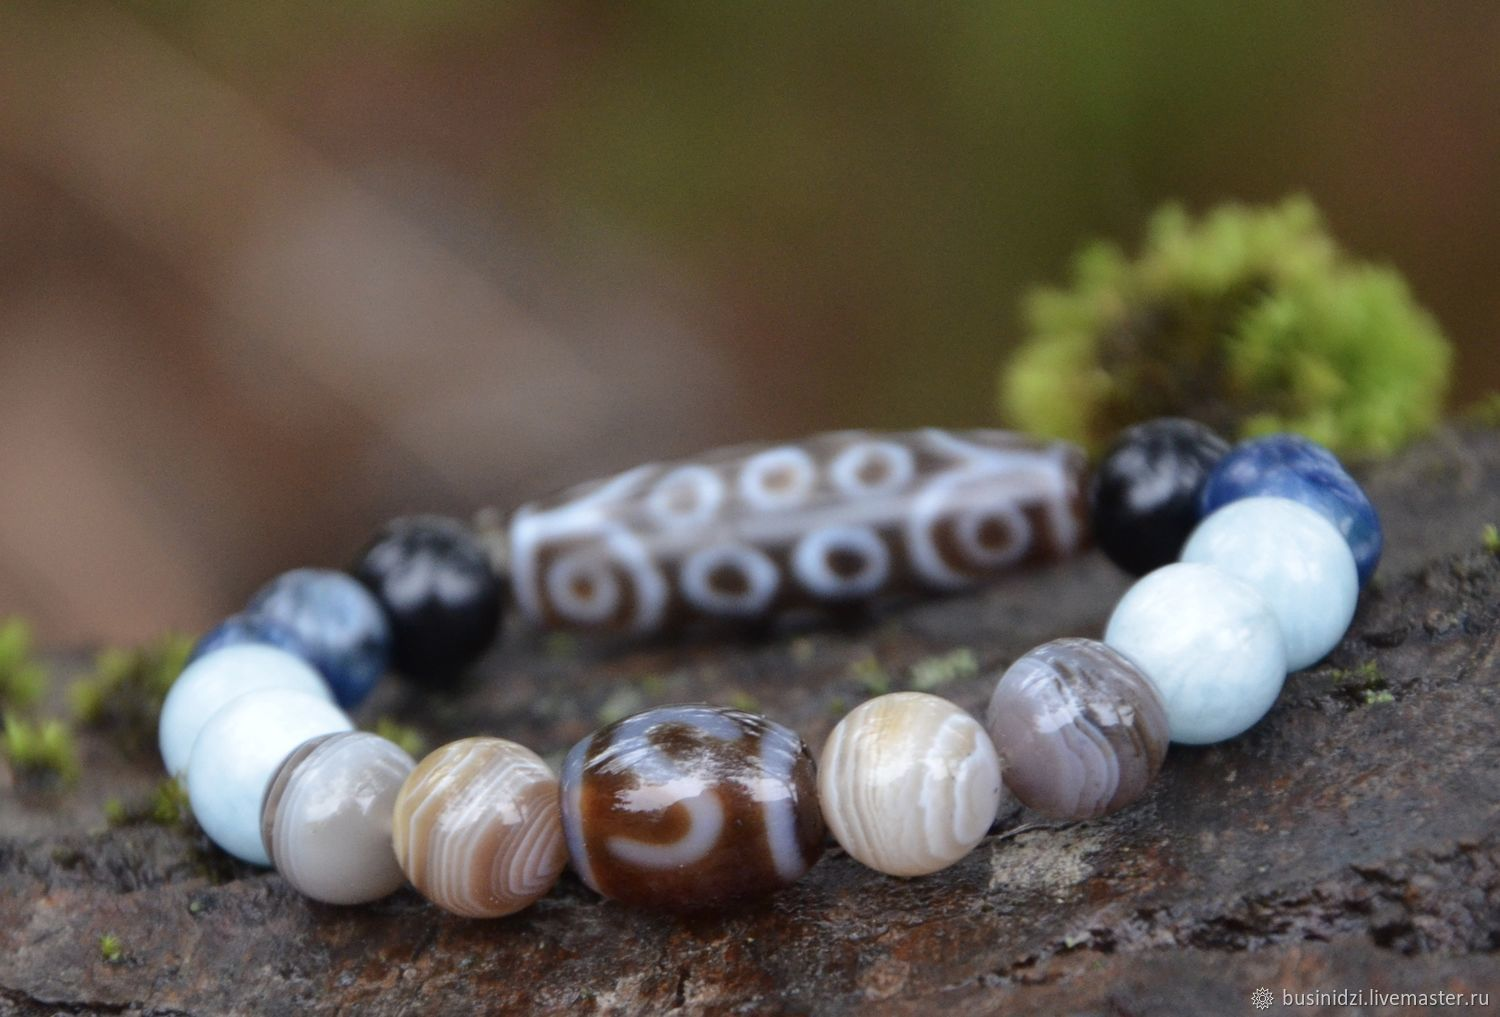 Bracelet with beads JI-personal amulet for good luck, Amulet, Pereslavl-Zalesskij,  Фото №1